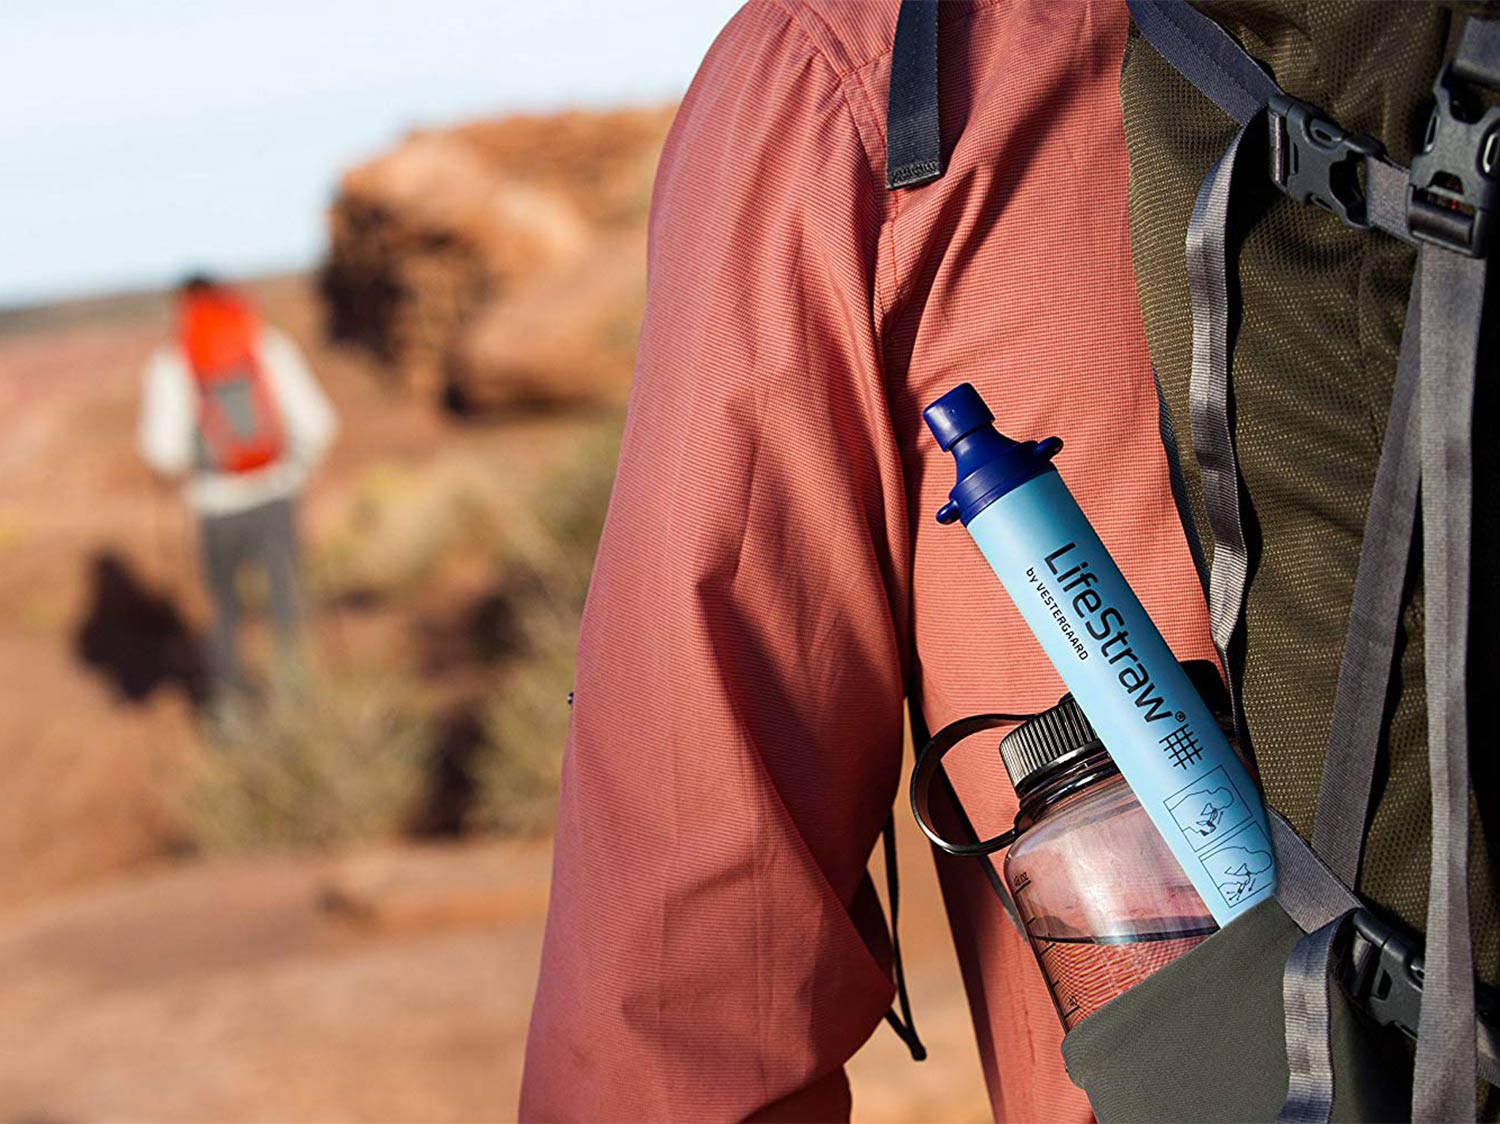 Hunters with a LifeStraw in the outdoors.